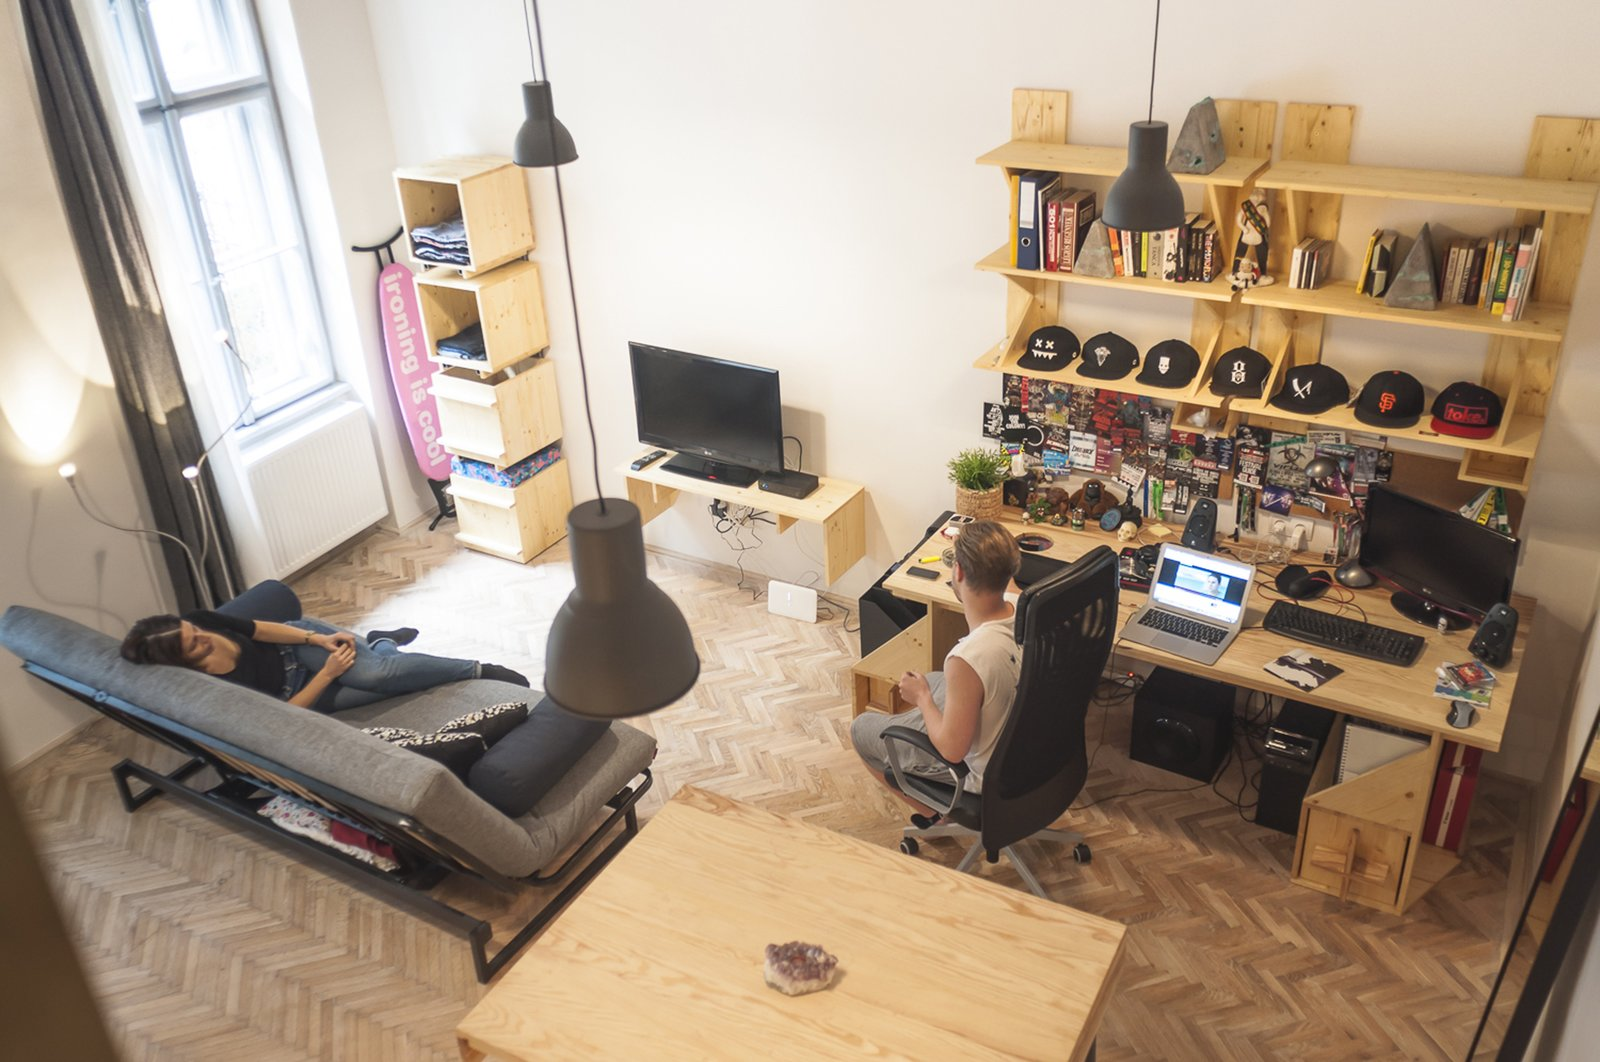 Chair, Sofa, Pendant Lighting, Bookcase, Medium Hardwood Floor, Study Room Type, Shelves, Storage, Desk, Dining Room, Bar, and Table The view from the top of Bence's lofted bedroom reveals the open atmosphere in the living room, where open storage spaces are casually filled with personal effects   Micro live:work studio by Studio Bunyik